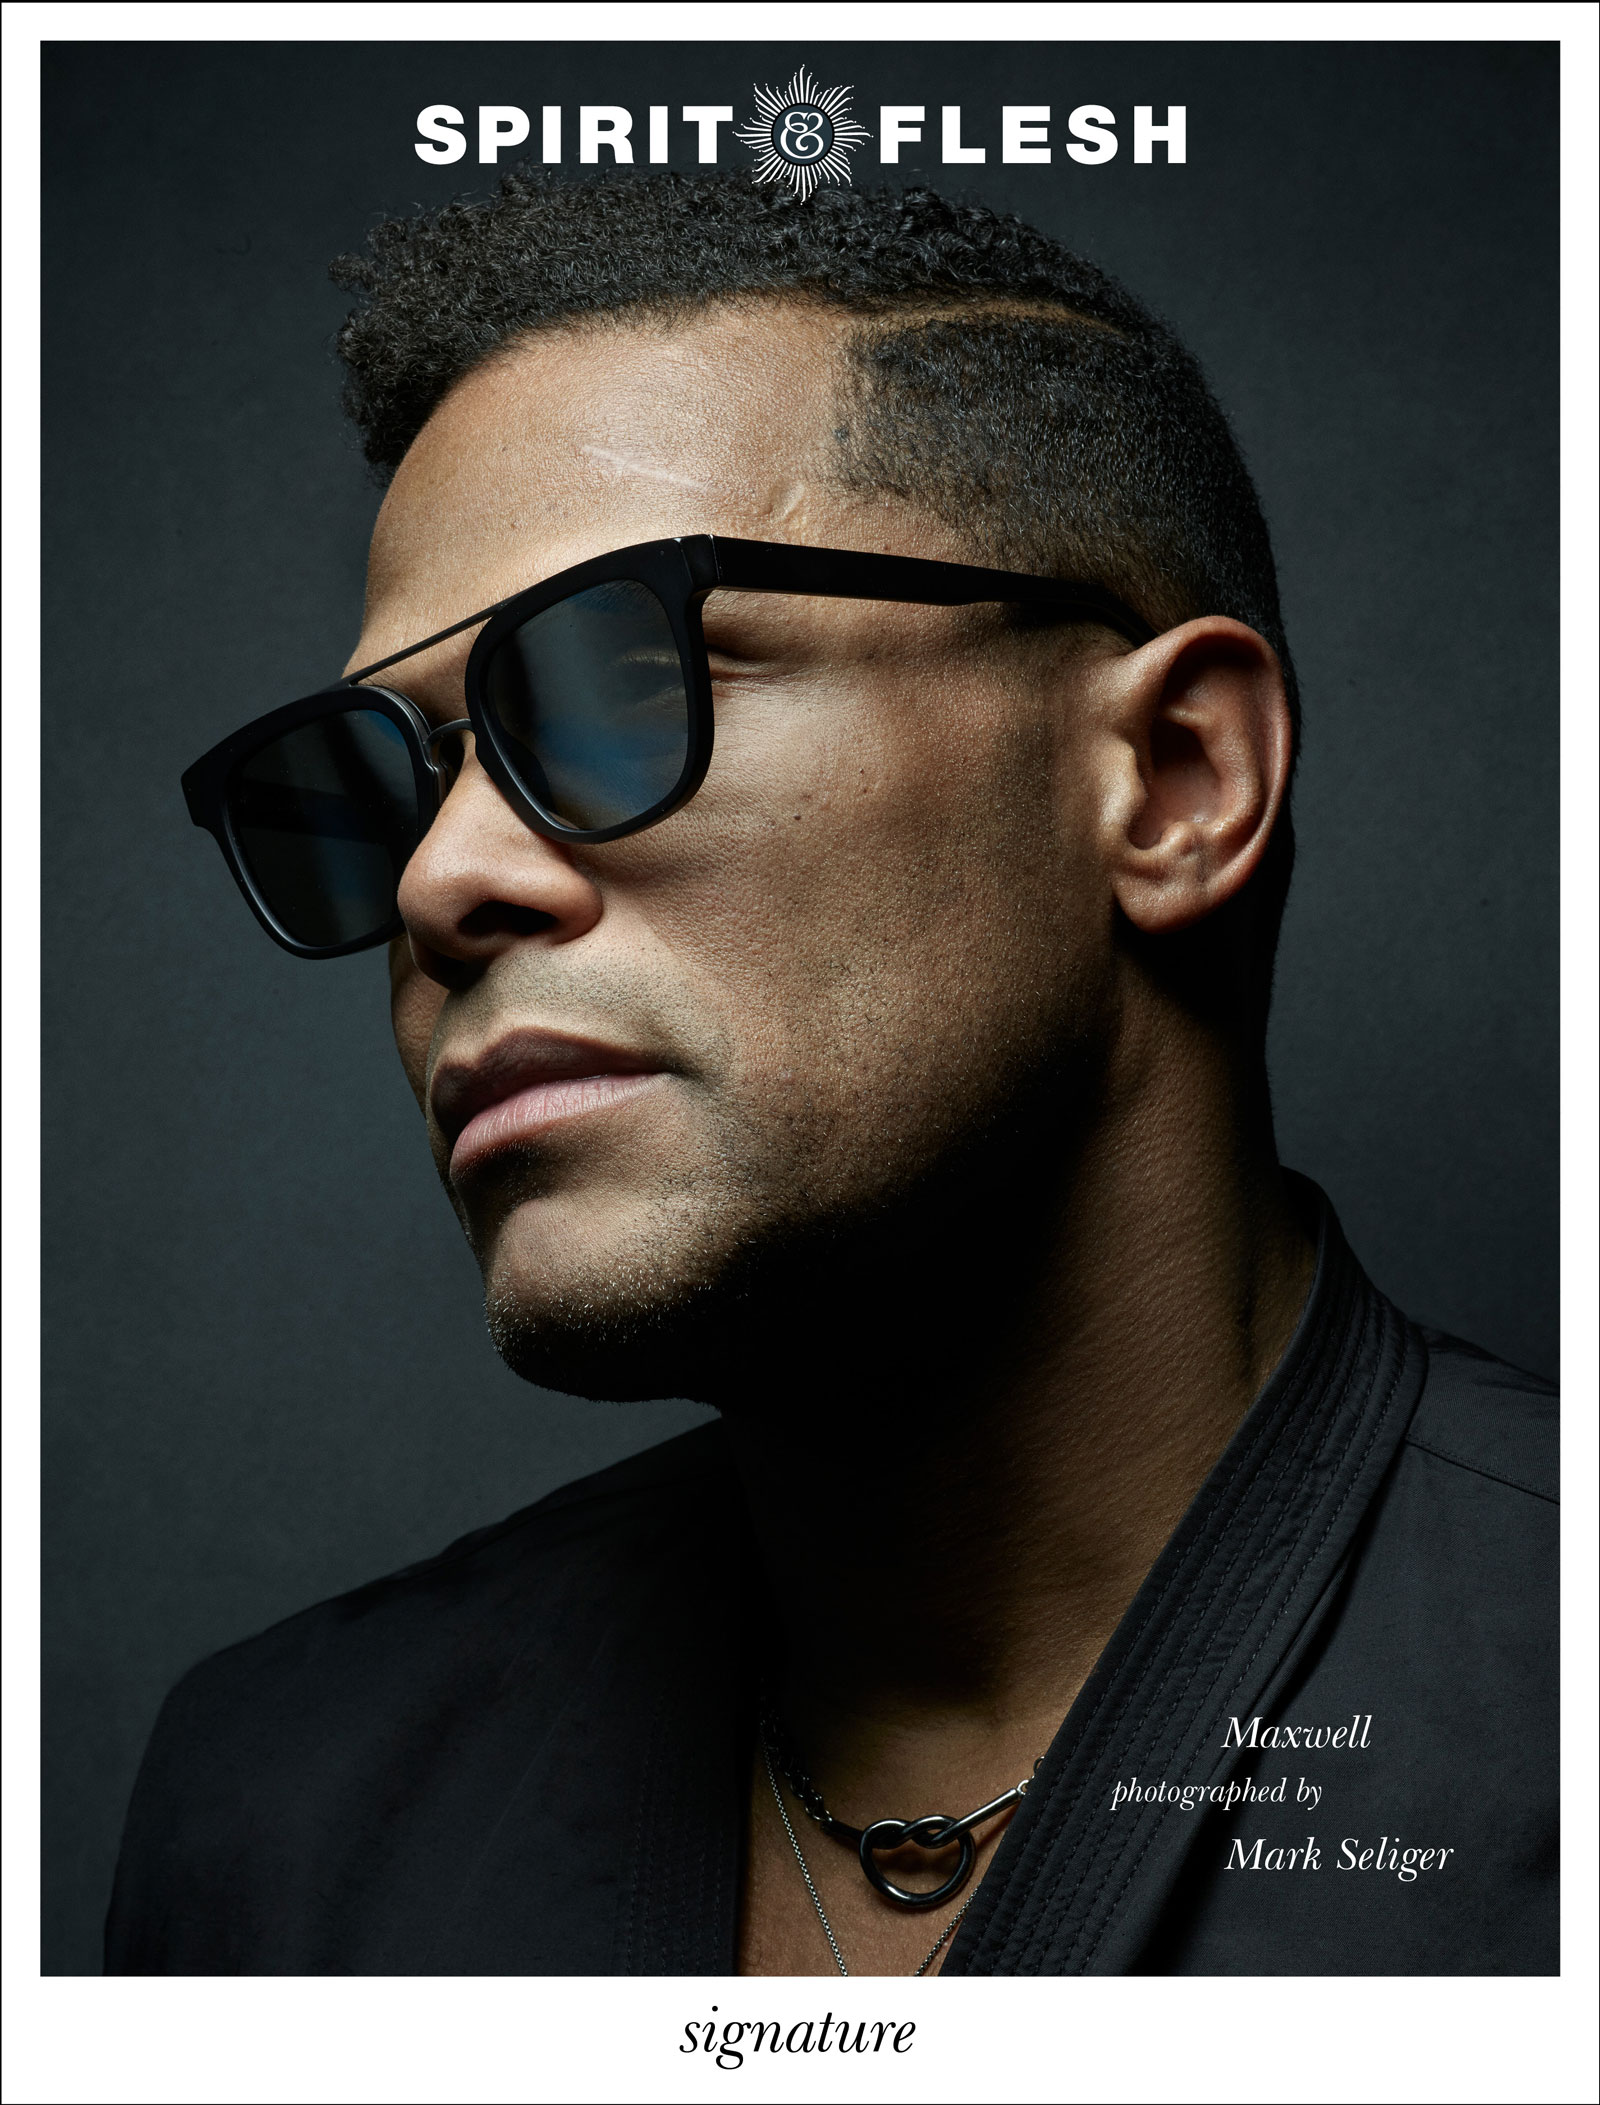 Maxwell photographed by Mark Seliger